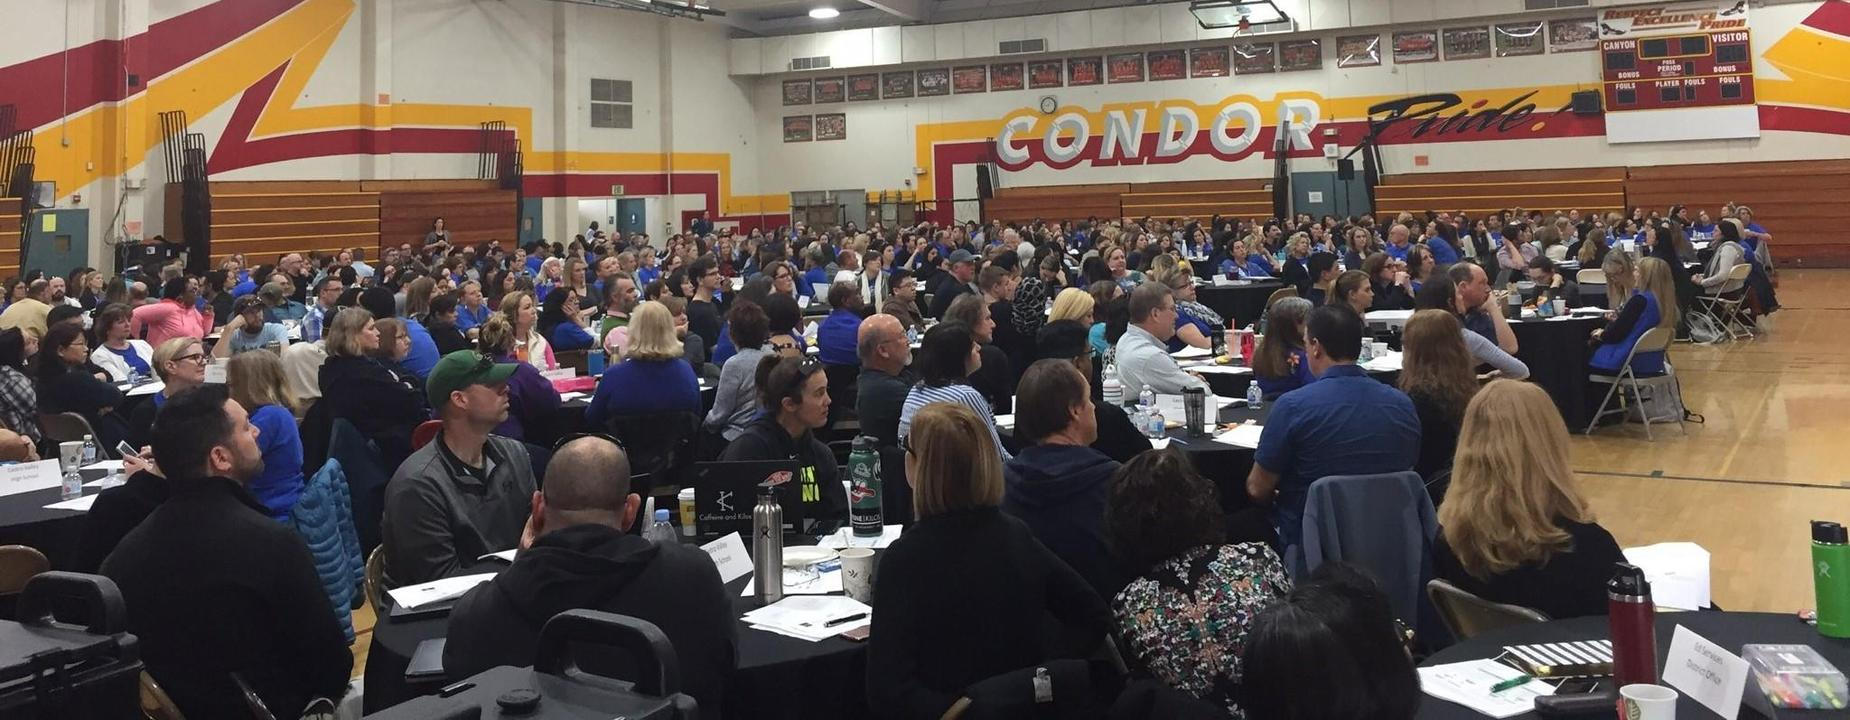 CVUSD Staff engaged in professional development training